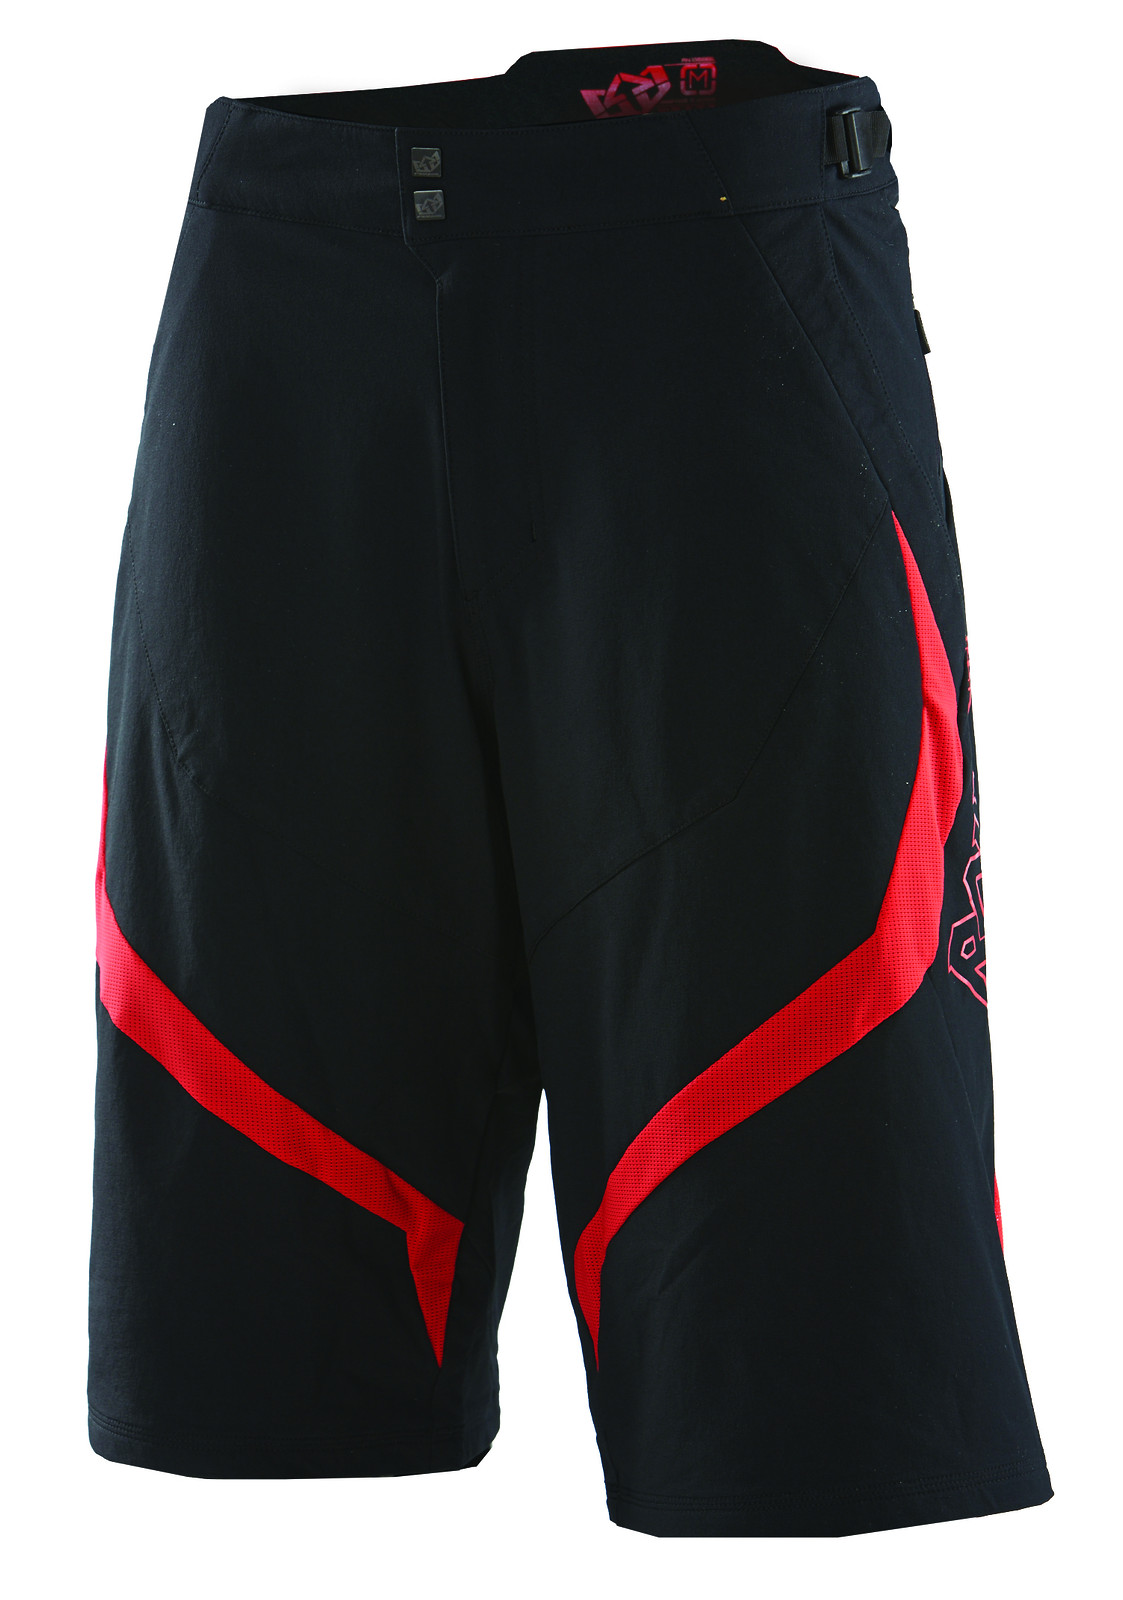 Royal 2014 Turbulence Shorts  turbulance short black red f